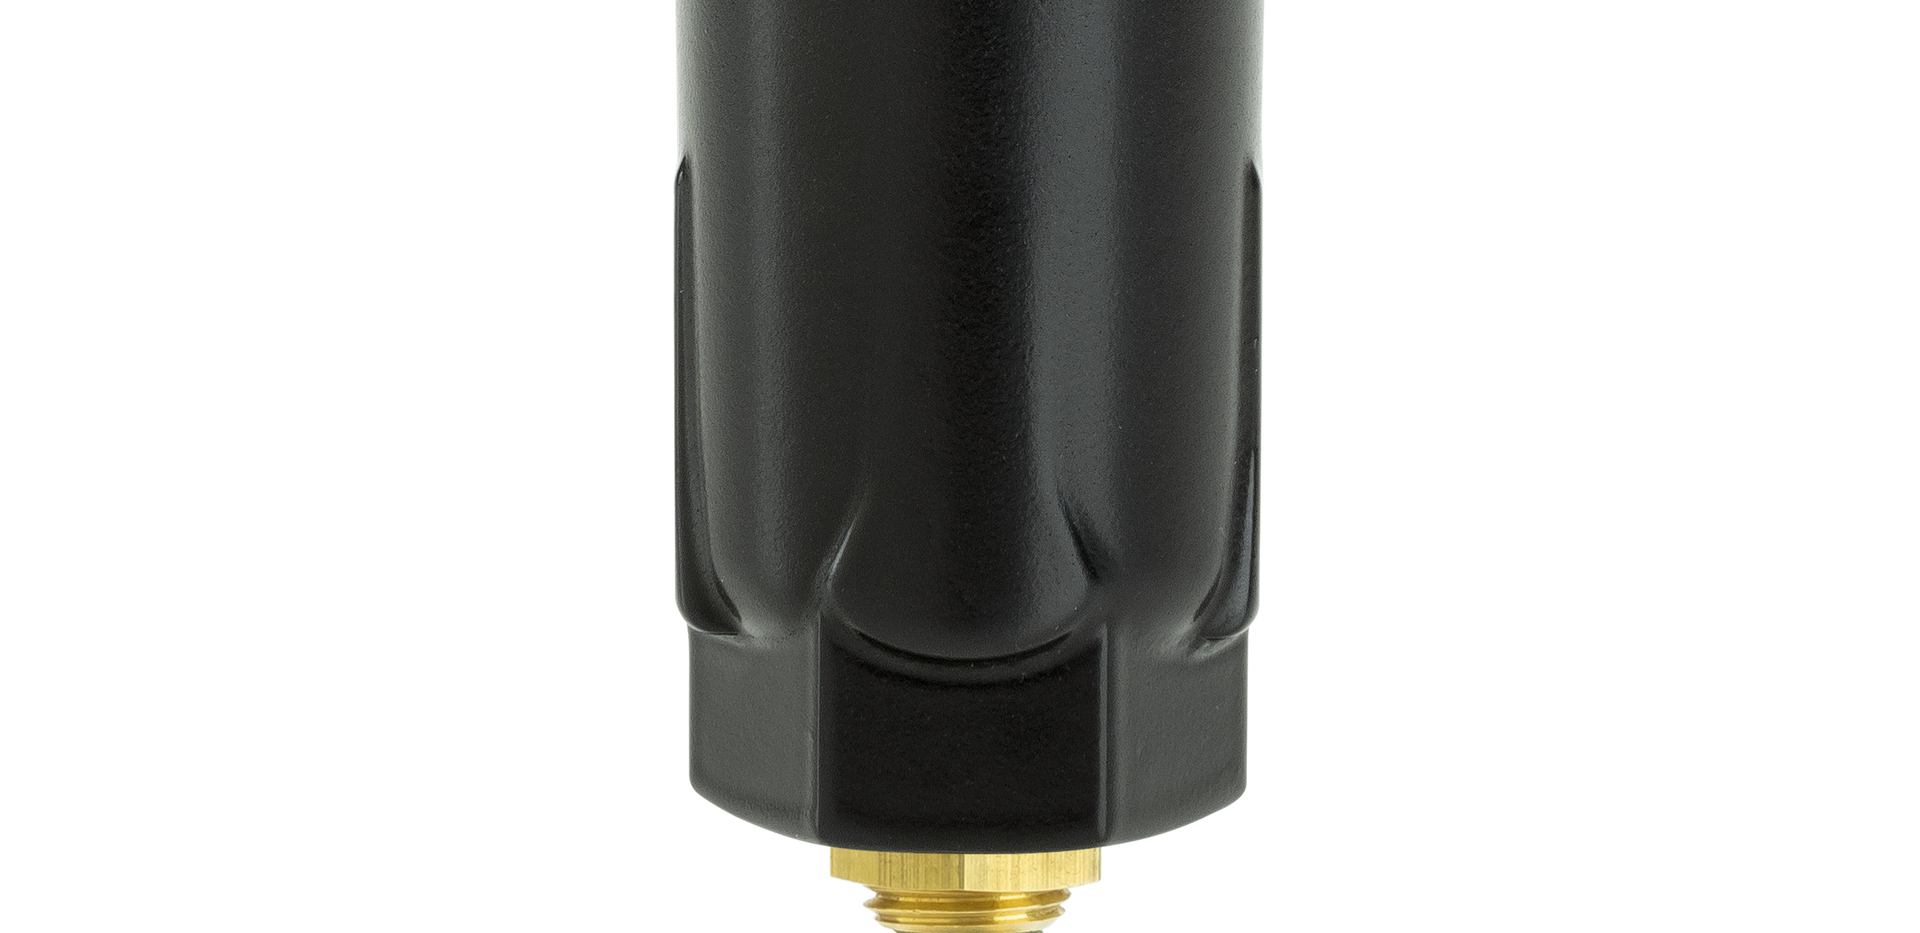 wco_water separator_1_front view.png